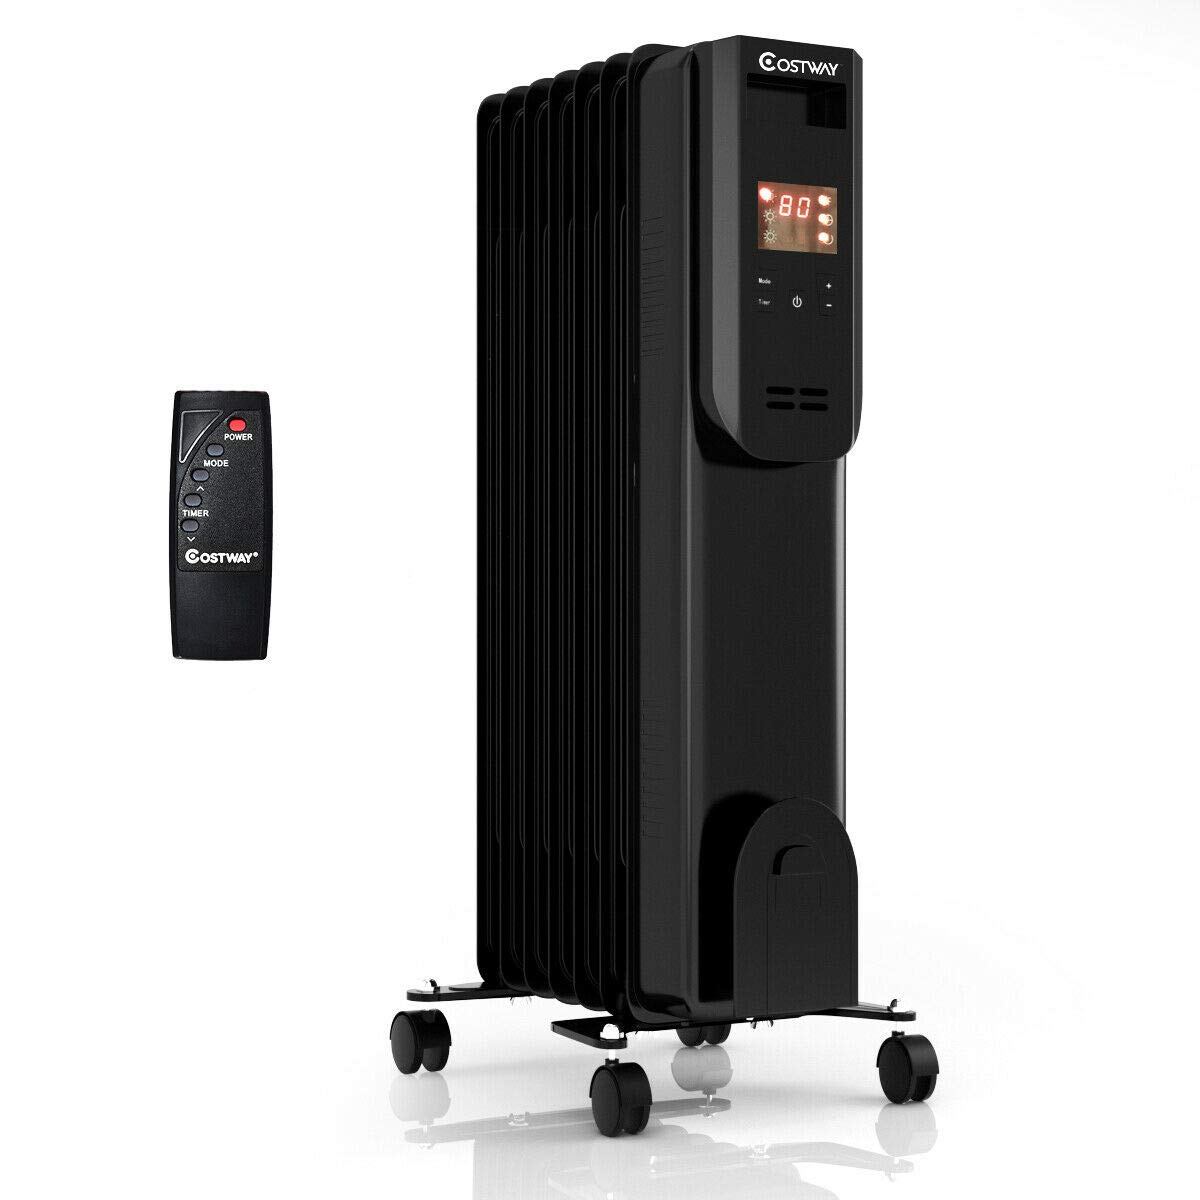 COSTWAY Portable Oil-Filled Heater, 1500W Electric Radiator Heater with 12h Timer, Remote Control, Digital Thermostat, Tip-over Overheat Protection, Energy-Efficient Space Heater for Bedroom, Office